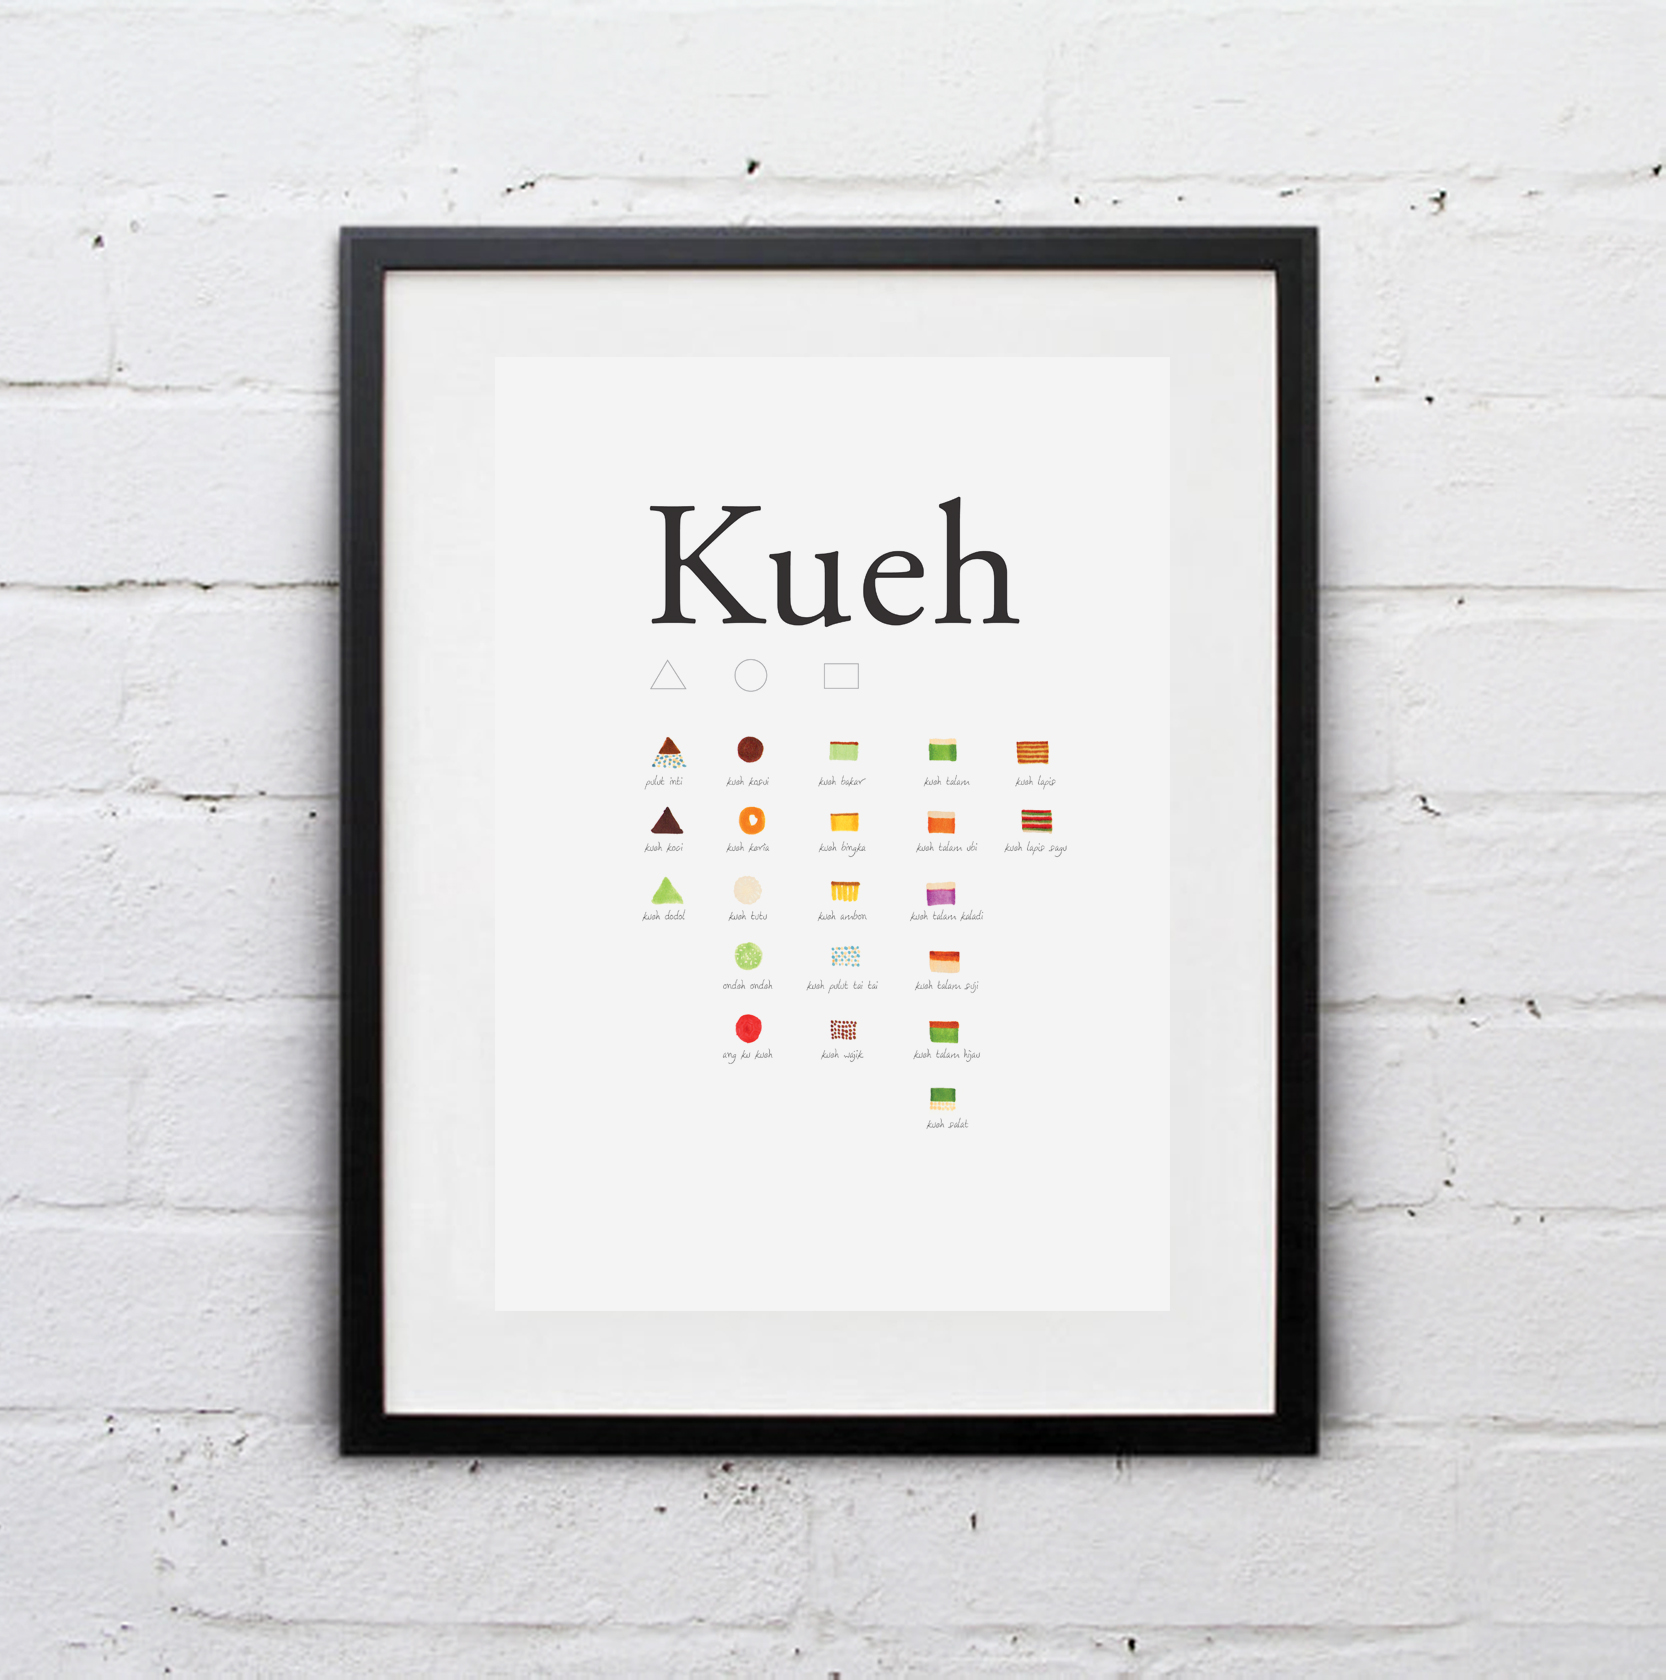 Kueh_framed_hi res.jpg